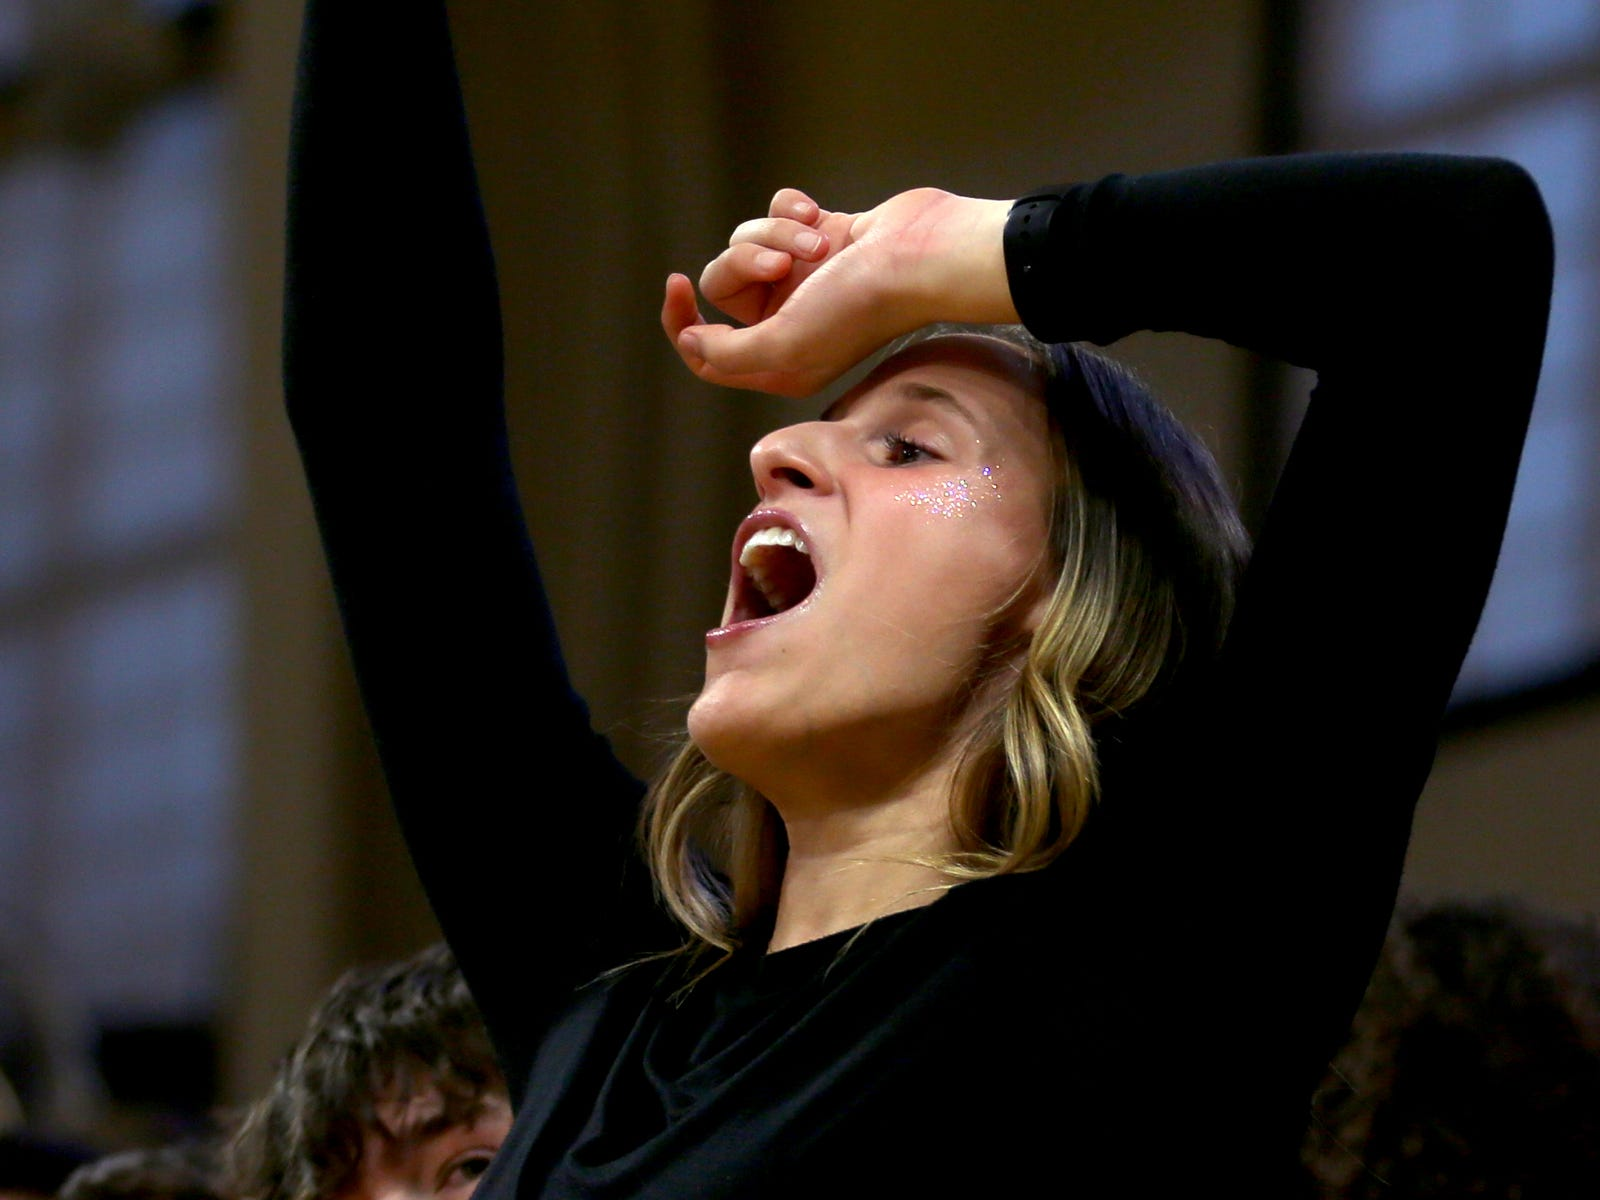 A Silverton fan reacts to a play in the second half of the La Salle Prep vs. Silverton girls basketball game in the OSAA Class 5A quarterfinals at Oregon State University in Corvallis on Thursday, March 7, 2019. La Salle Prep won the game 57-46.